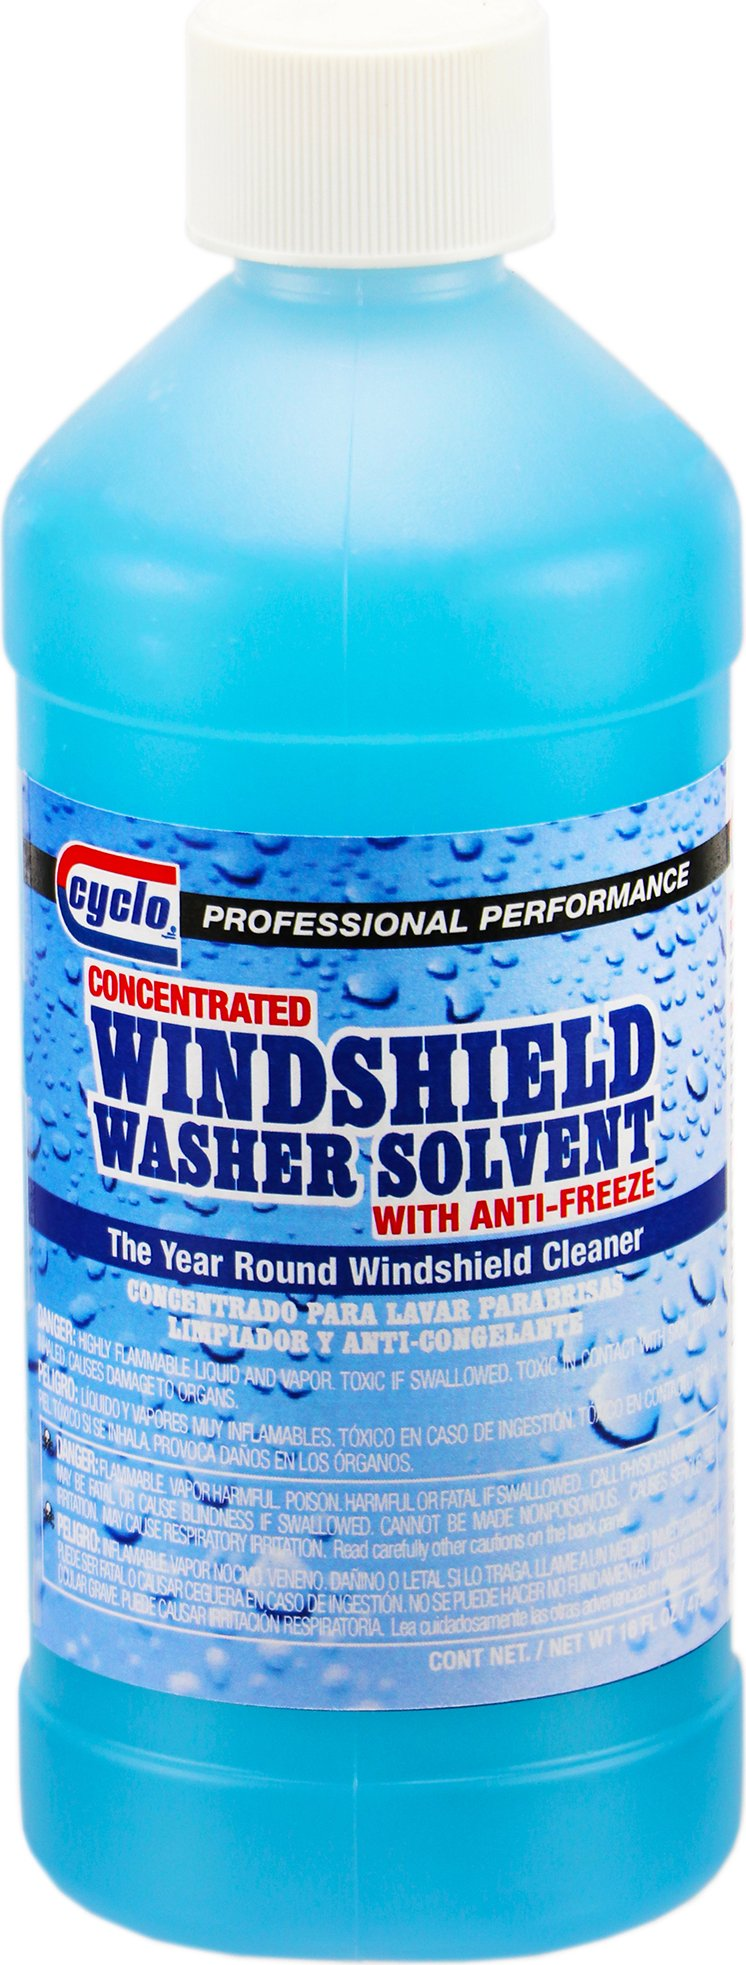 Niteo Cyclo Concentrated Windshield Washer Solvent with Antifreeze, 16 fl oz, Case of 12